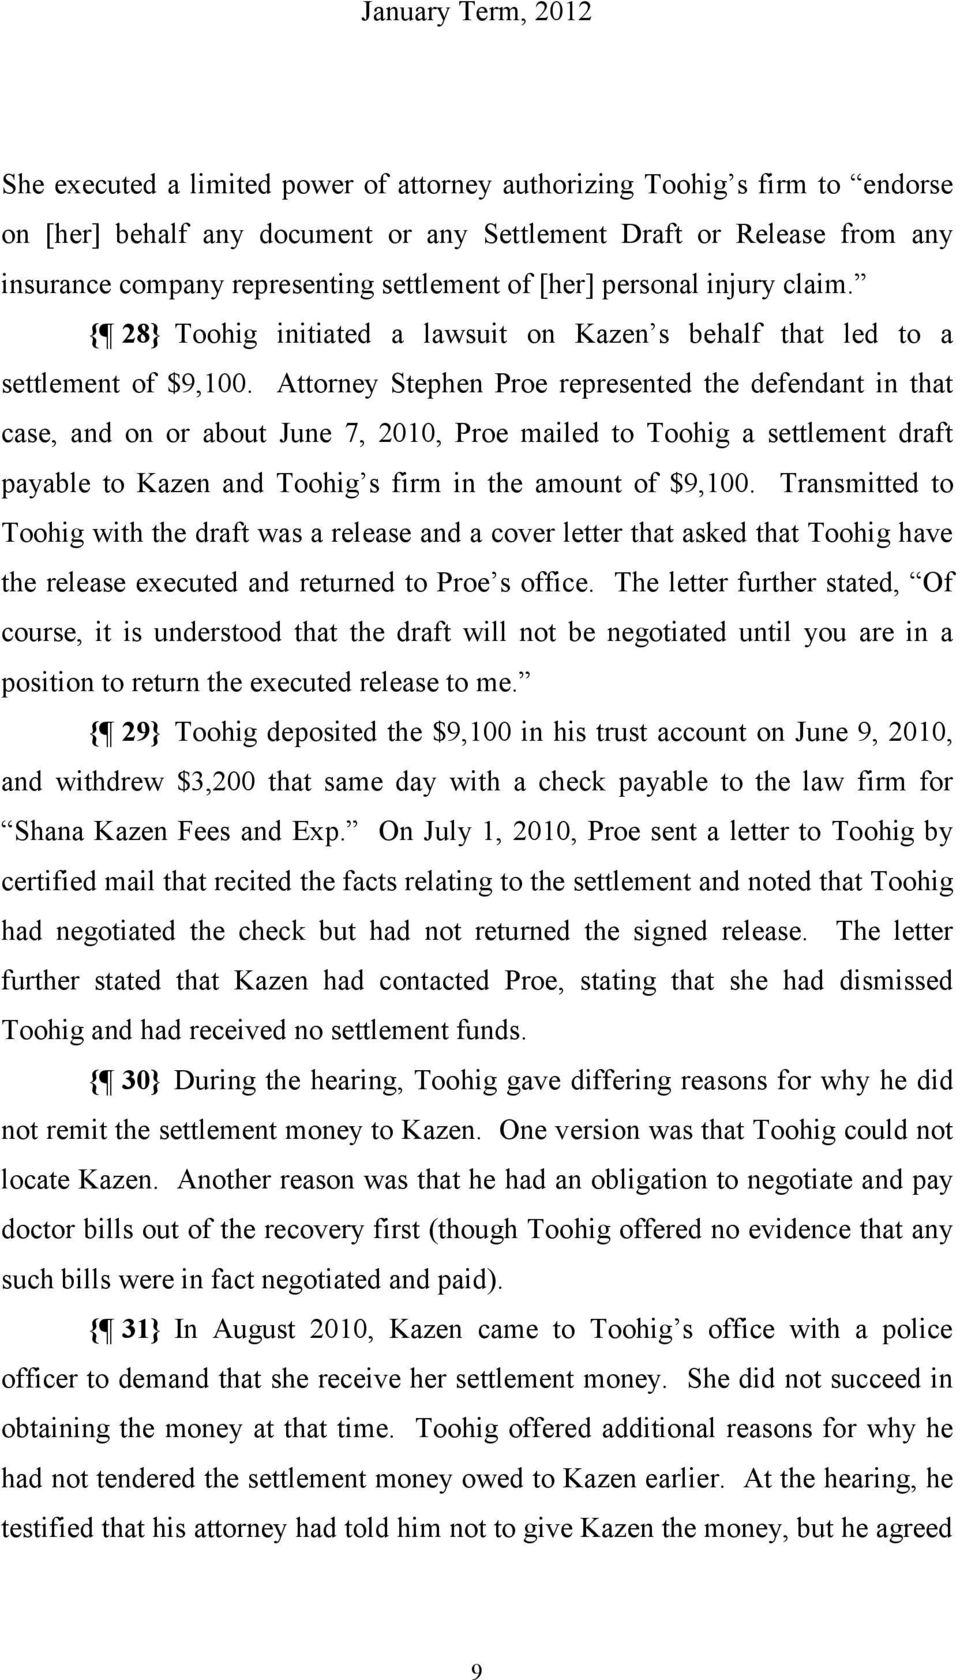 Attorney Stephen Proe represented the defendant in that case, and on or about June 7, 2010, Proe mailed to Toohig a settlement draft payable to Kazen and Toohig s firm in the amount of $9,100.